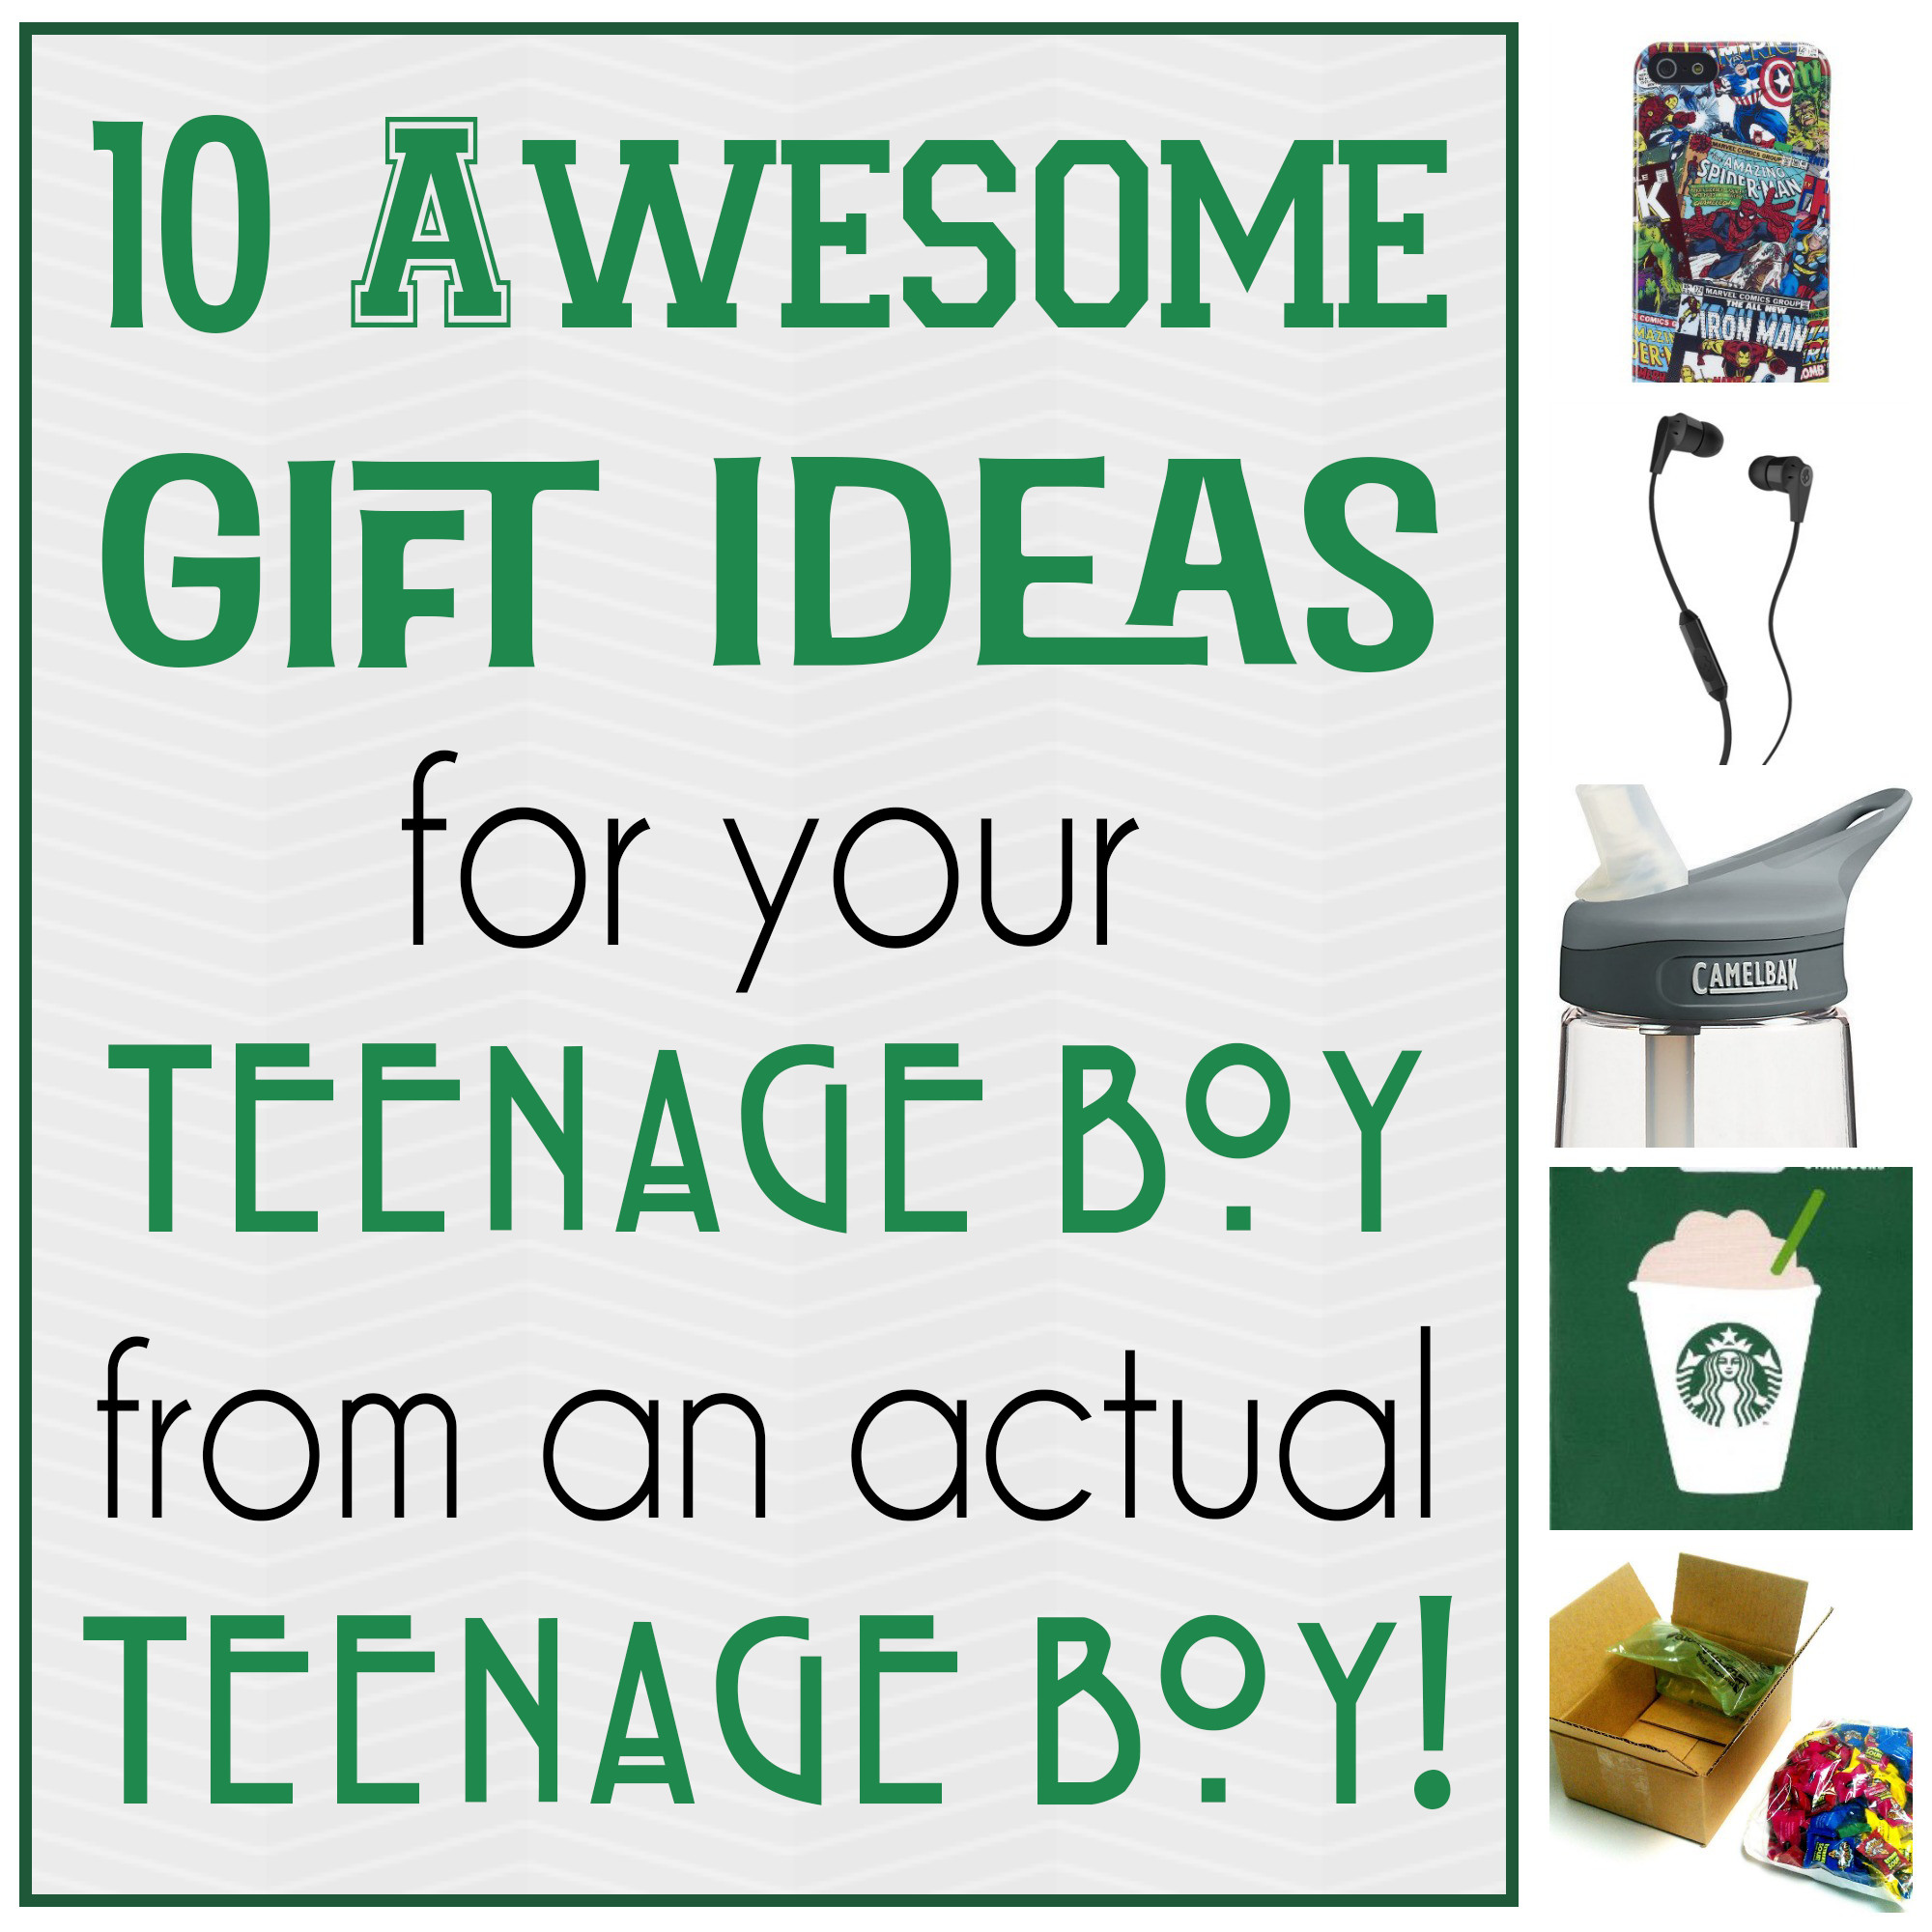 Best ideas about Christmas Gift Ideas For Teen Boys . Save or Pin 10 Awesome Gift Ideas for Teenage Boys Now.